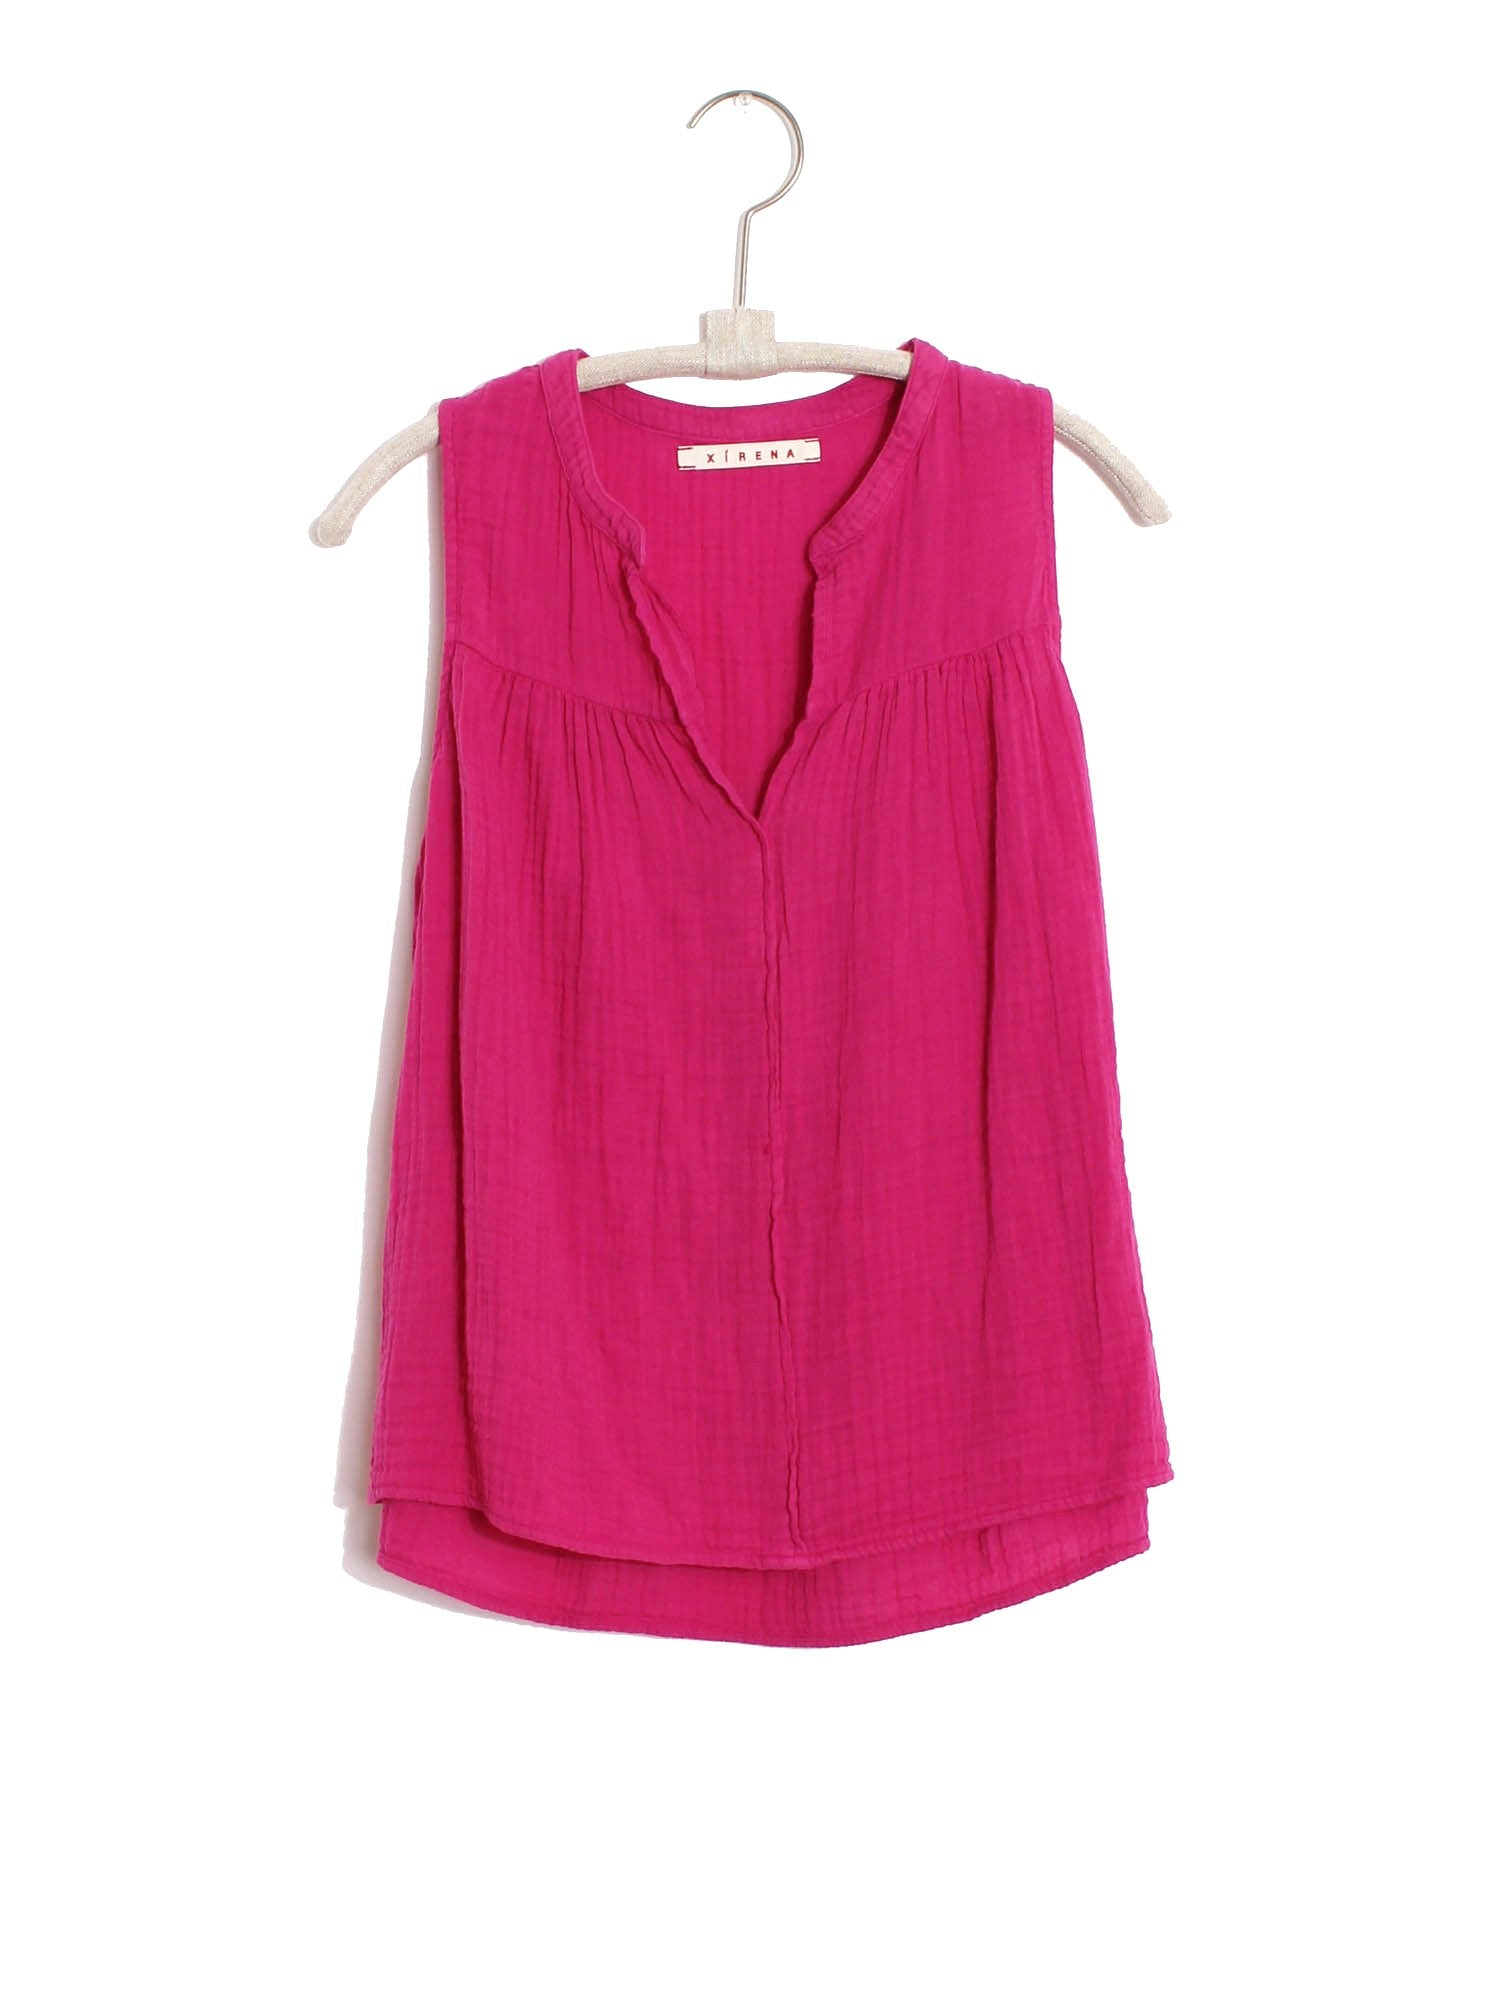 XiRENA Lipstick Pink Carrie Top (Small)